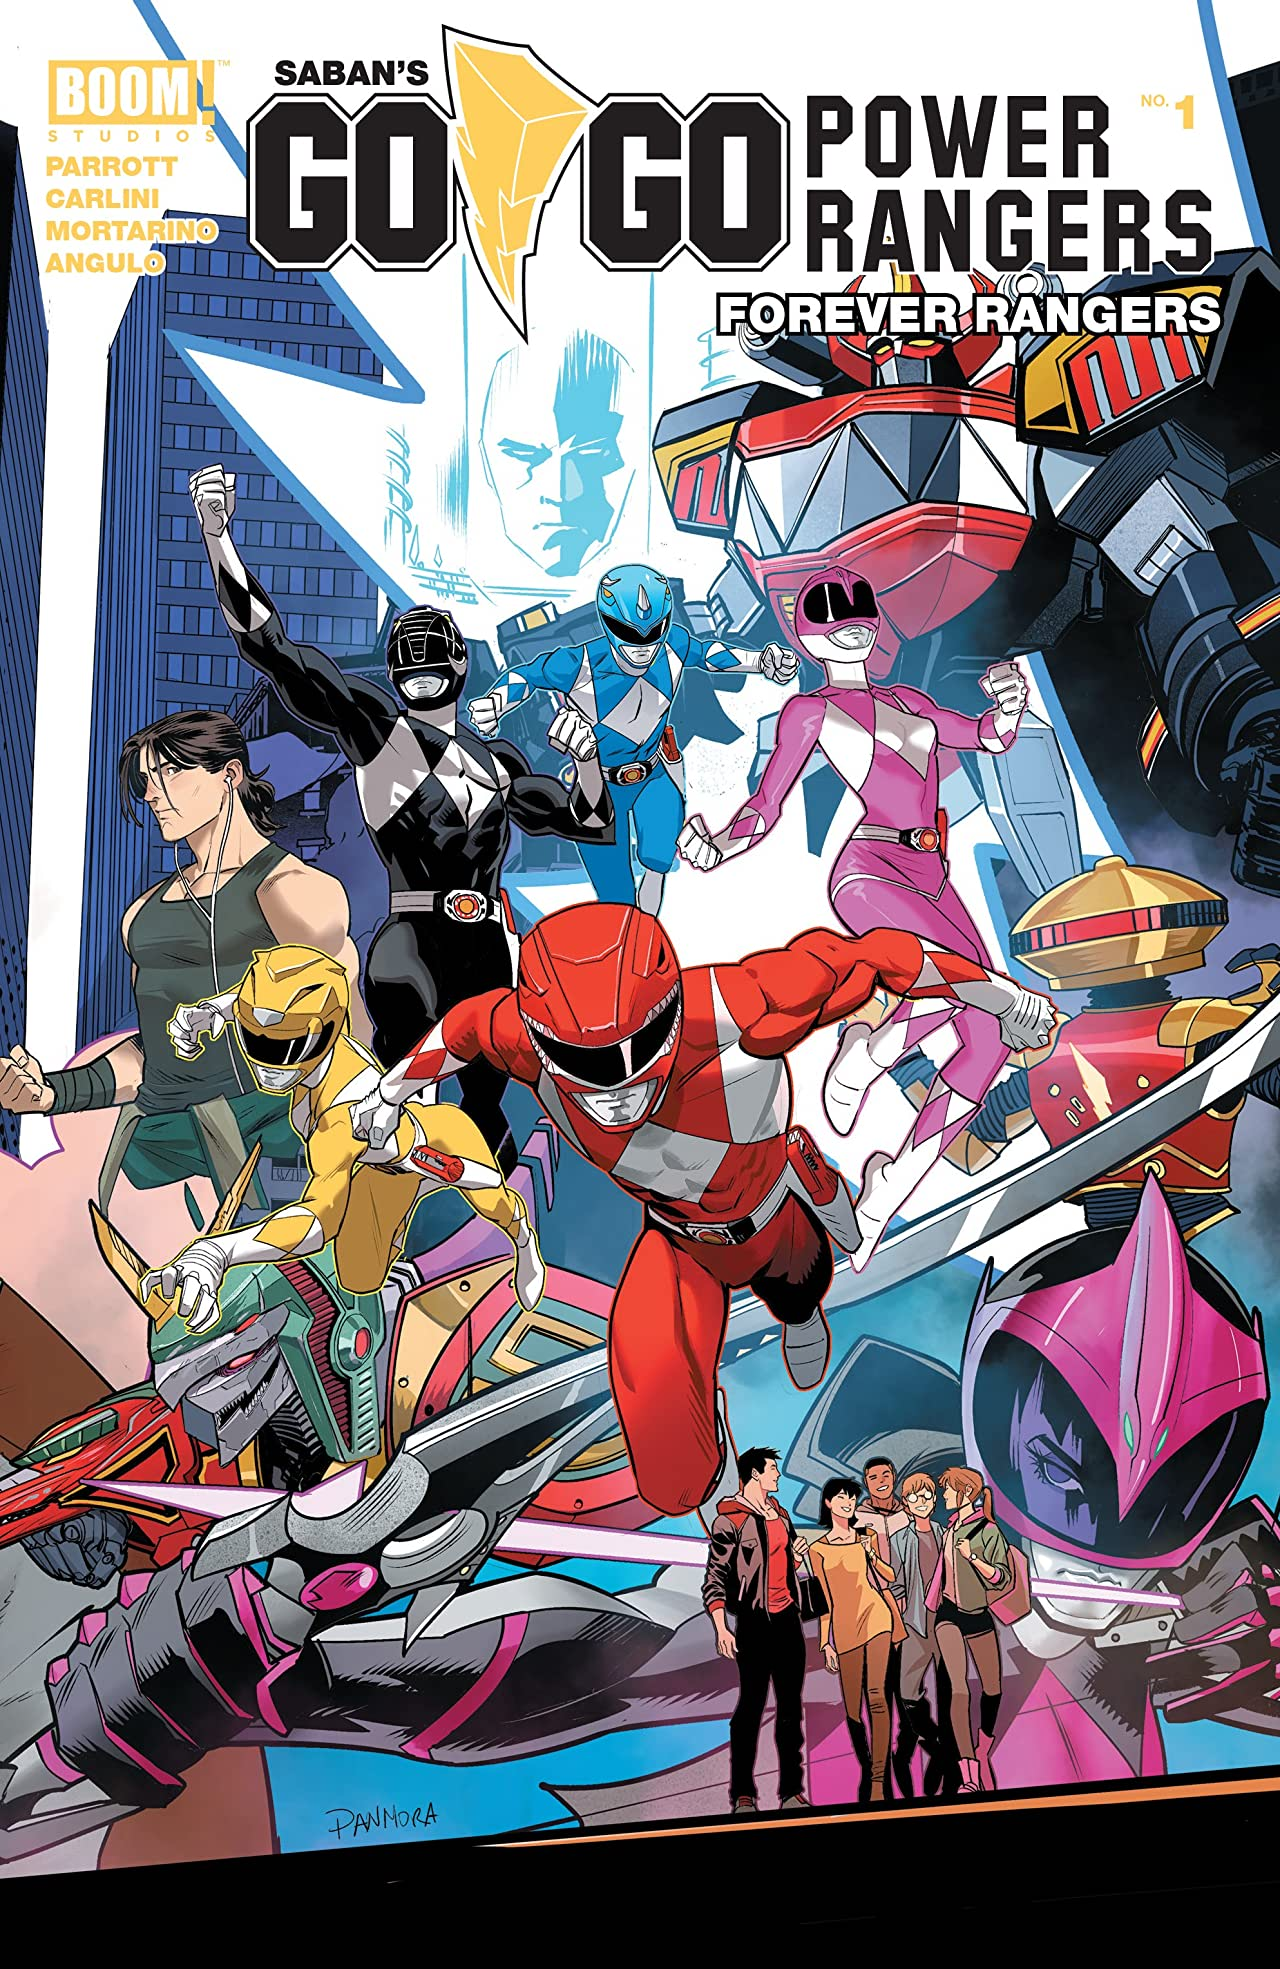 Saban's Go Go Power Rangers: Forever Rangers No.1